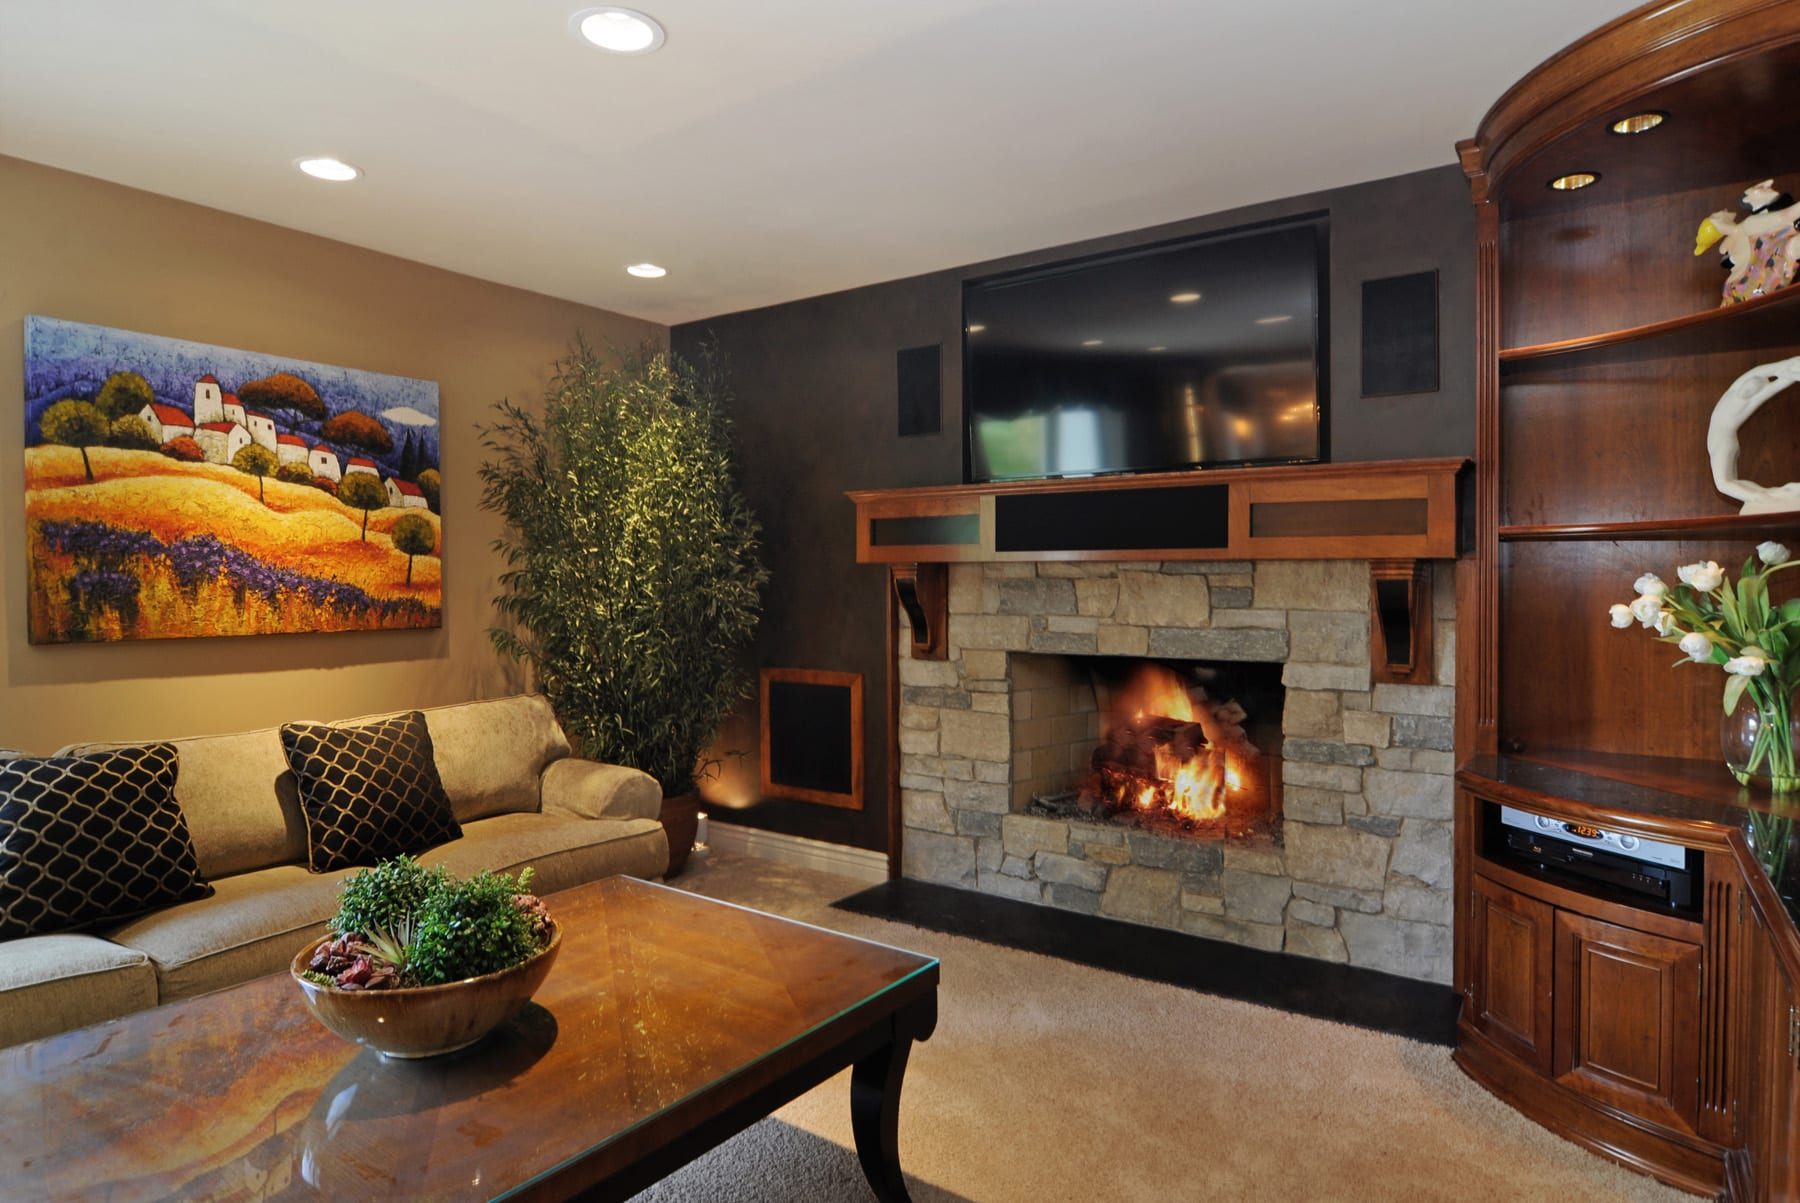 Design Consultations are customized to provide solutions for your home improvement goals.